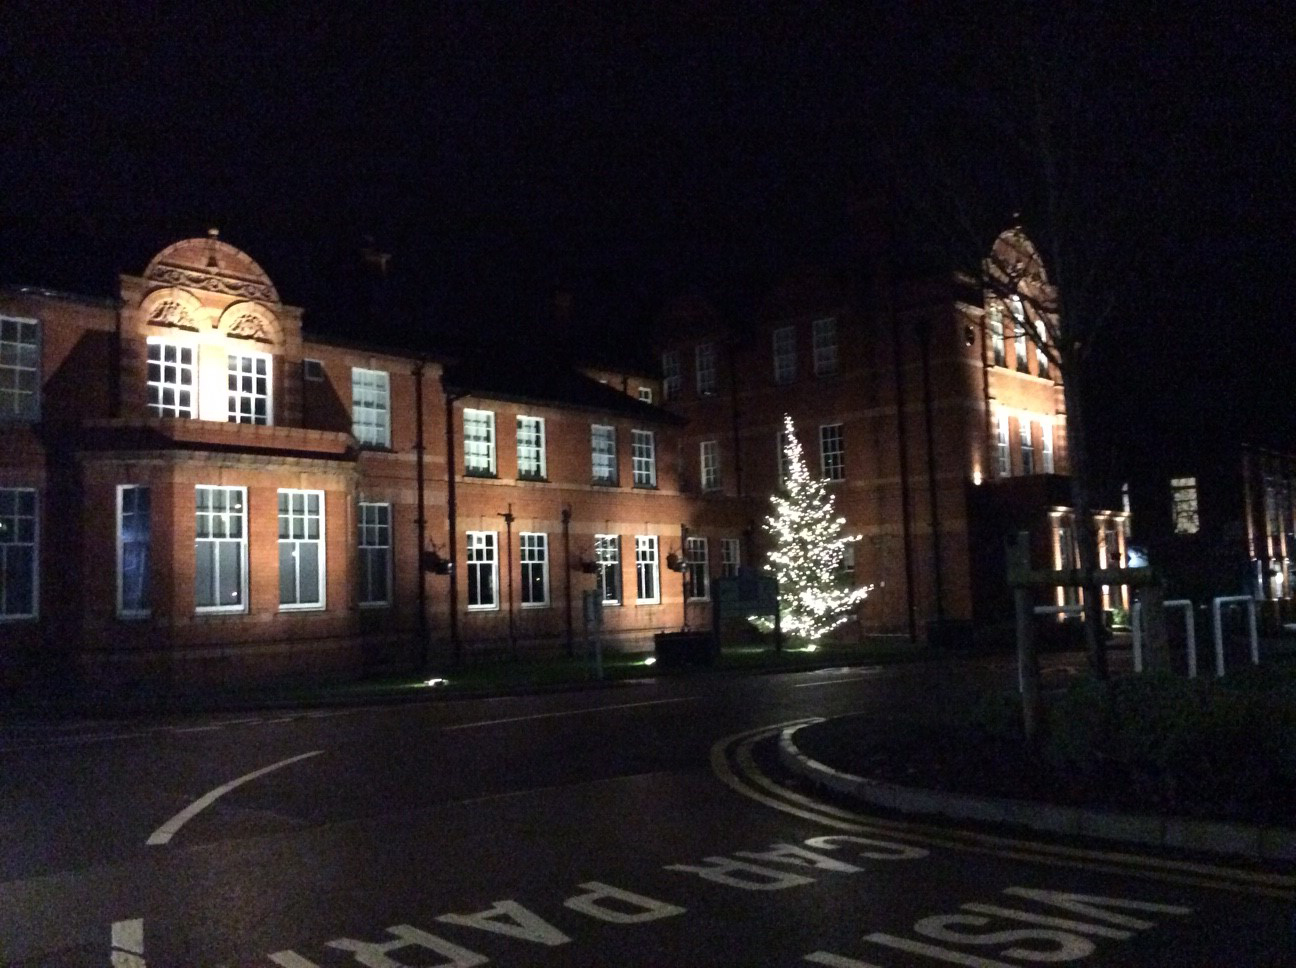 MMU Cheshire was resplendent in Christmas lights